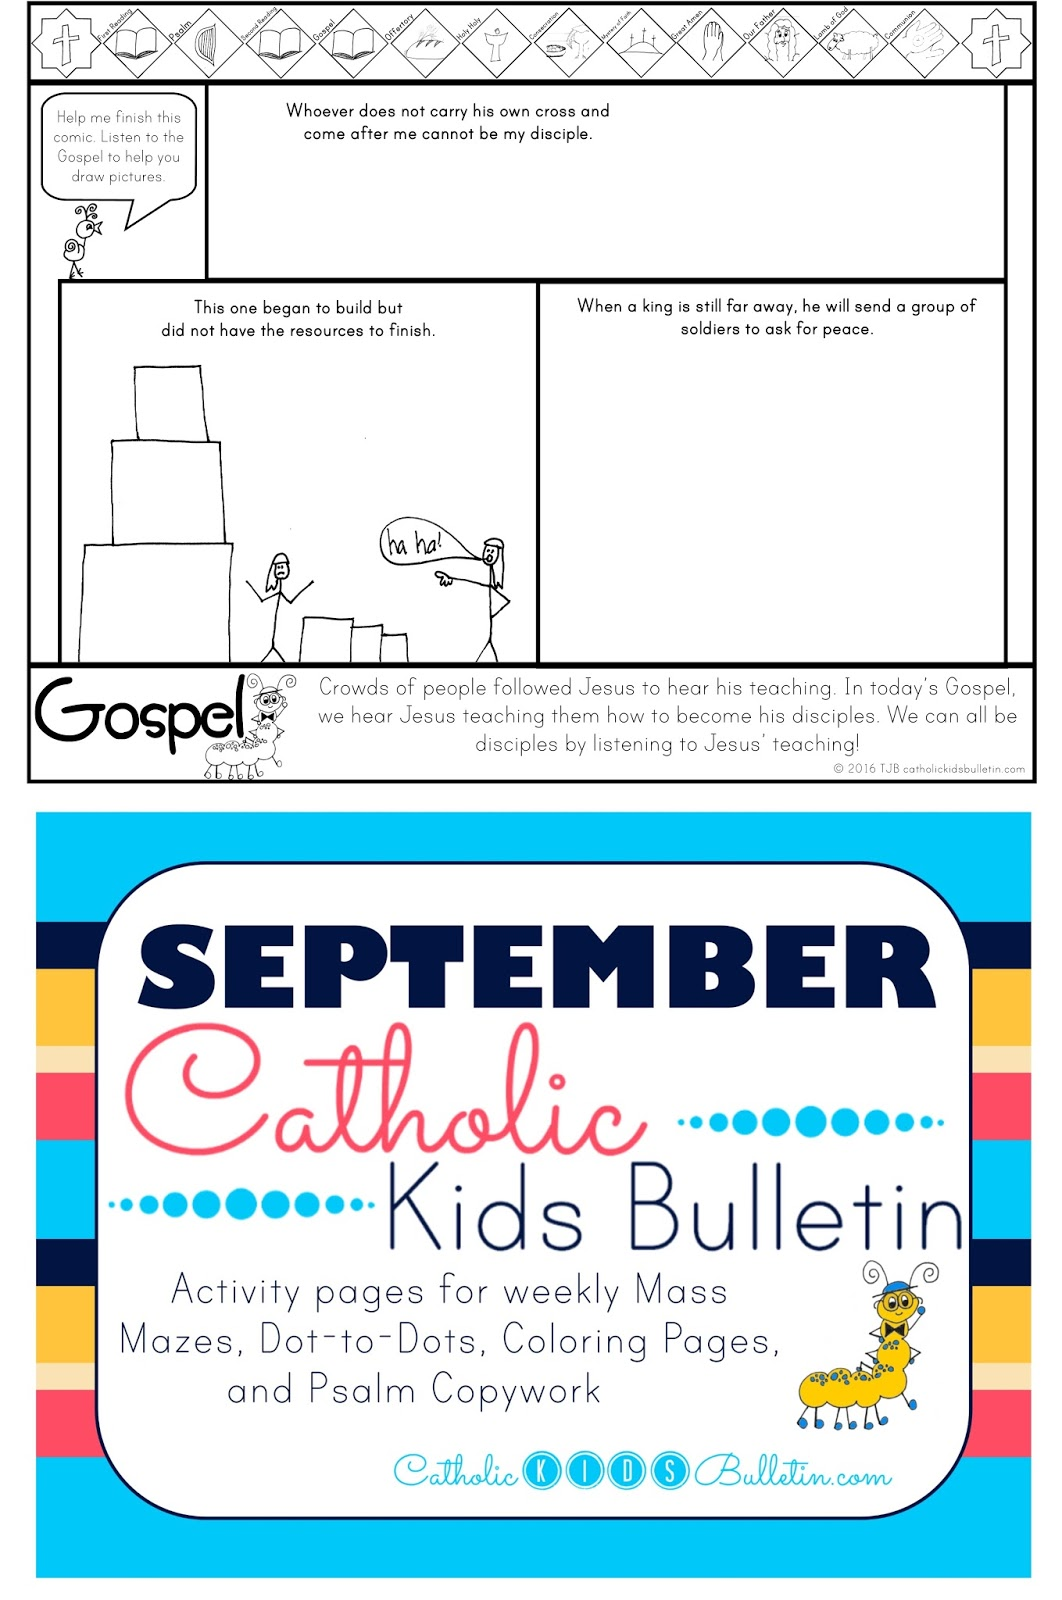 Coloring pages psalm 33 - Luke 14 25 33 Coloring Page Catholic Kids Bulletin